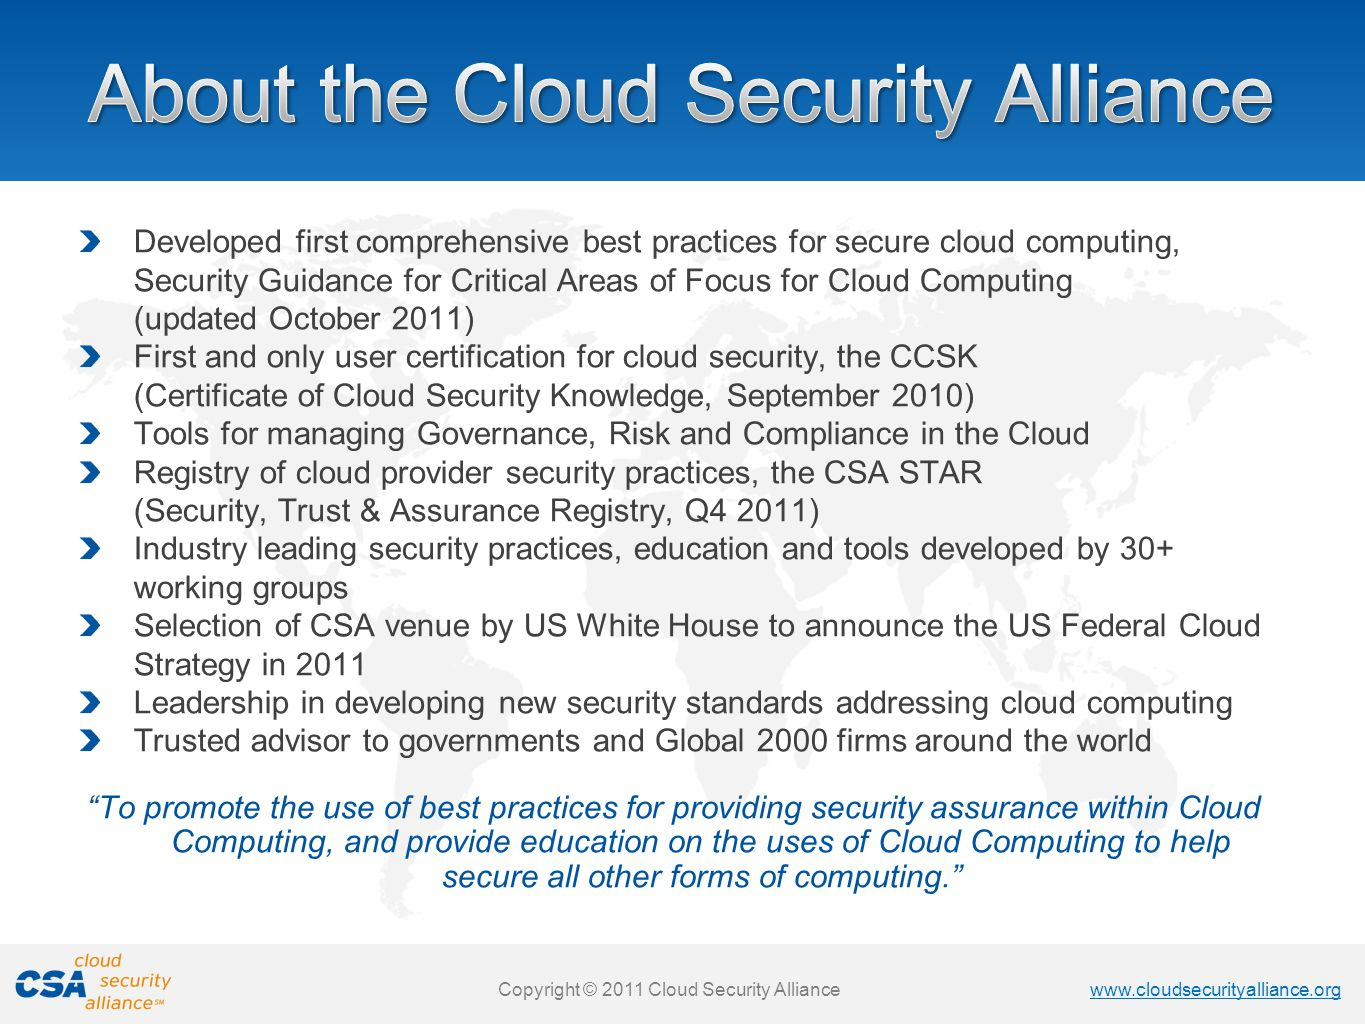 About the Cloud Security Alliance